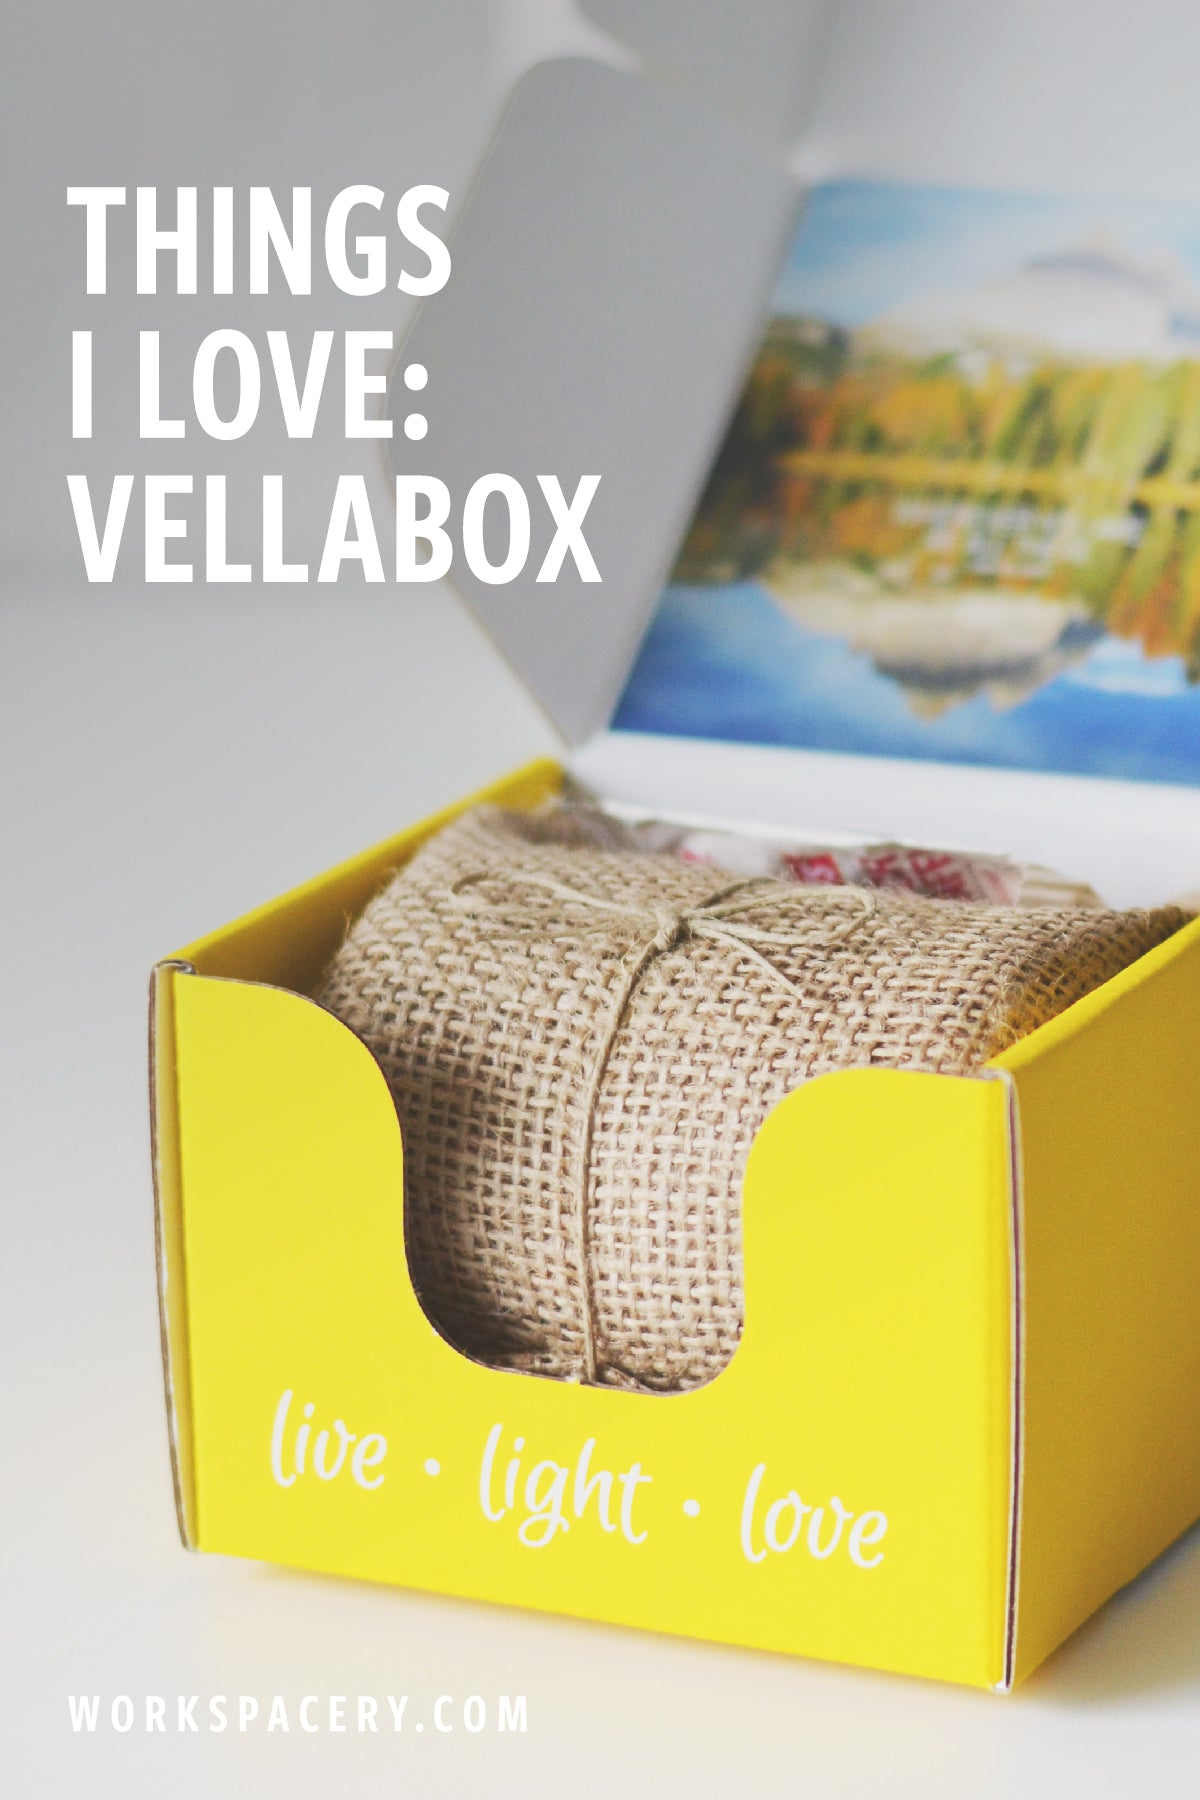 Vellabox Candle Subscription